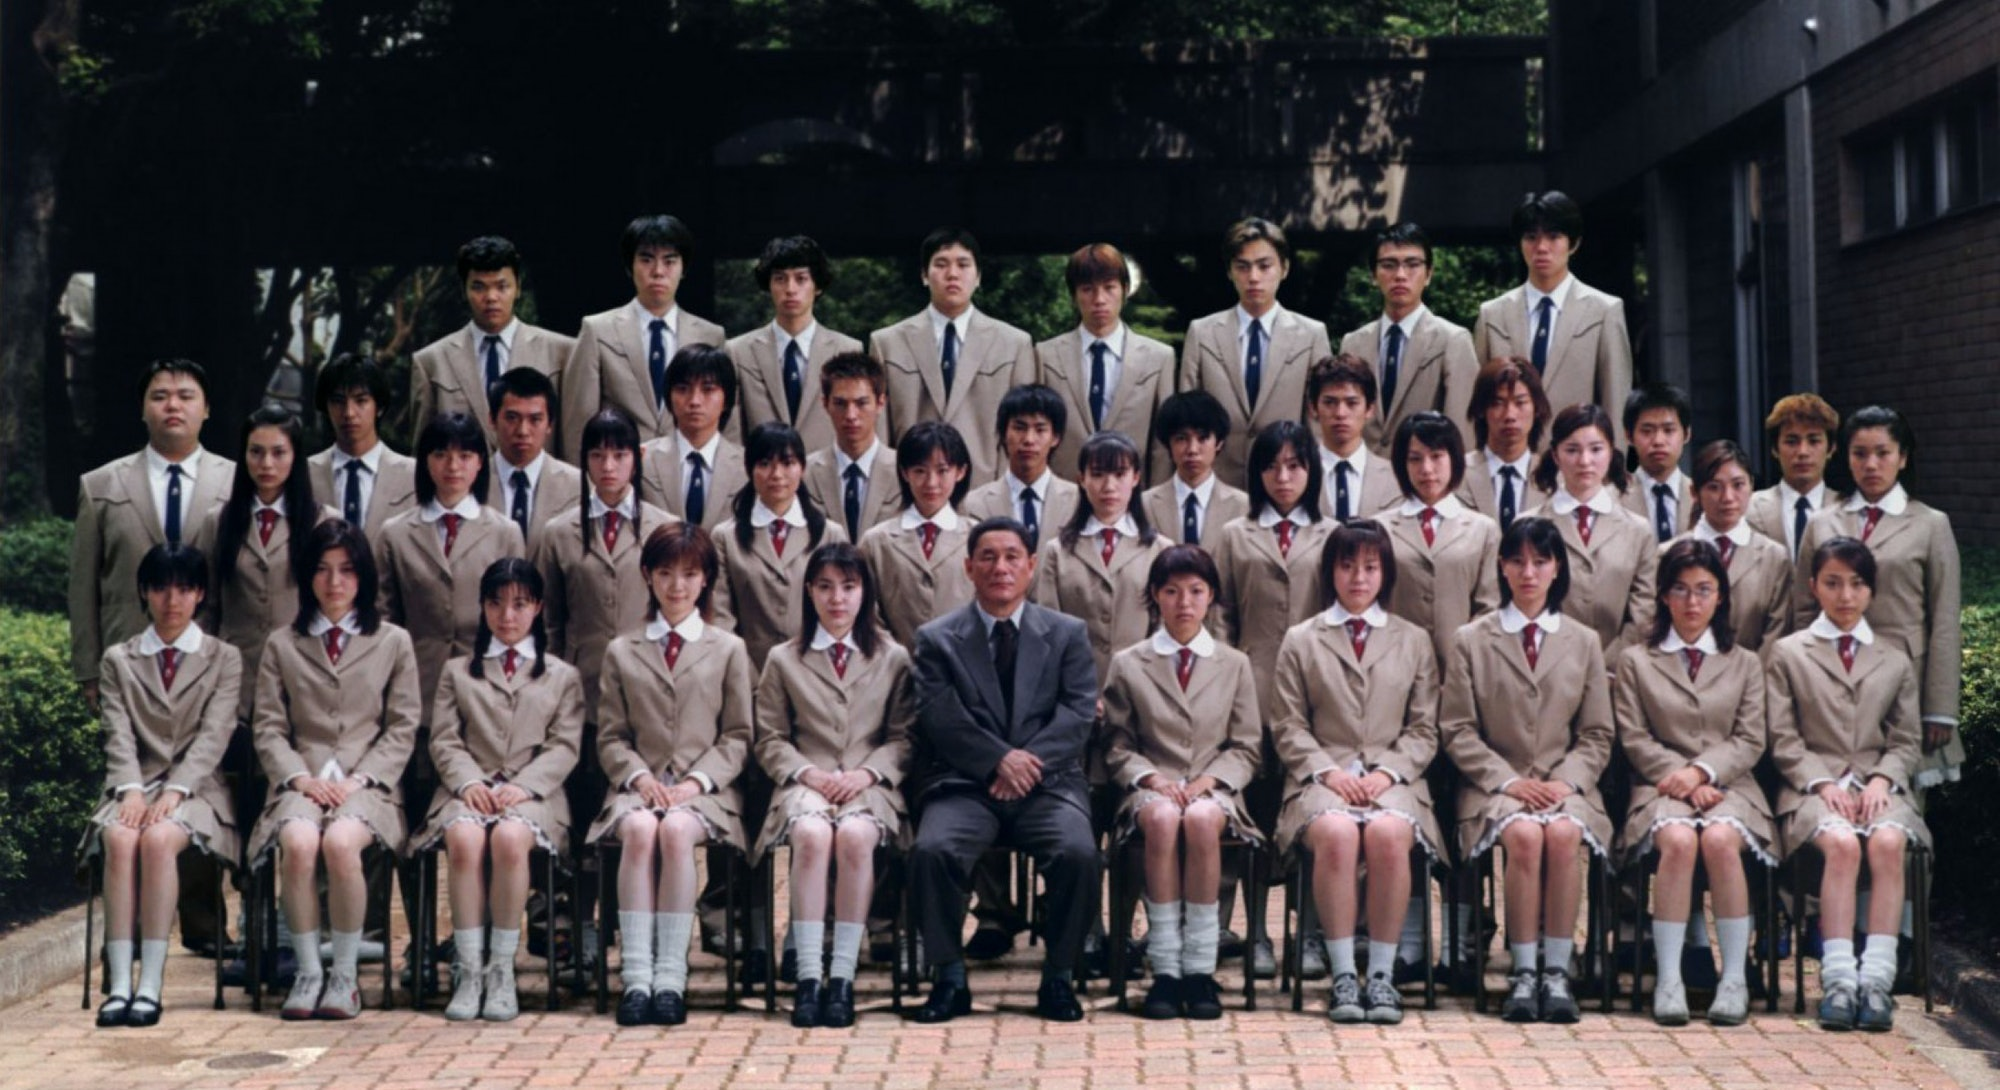 still from battle royale class of japanese students in uniform sitting for photo